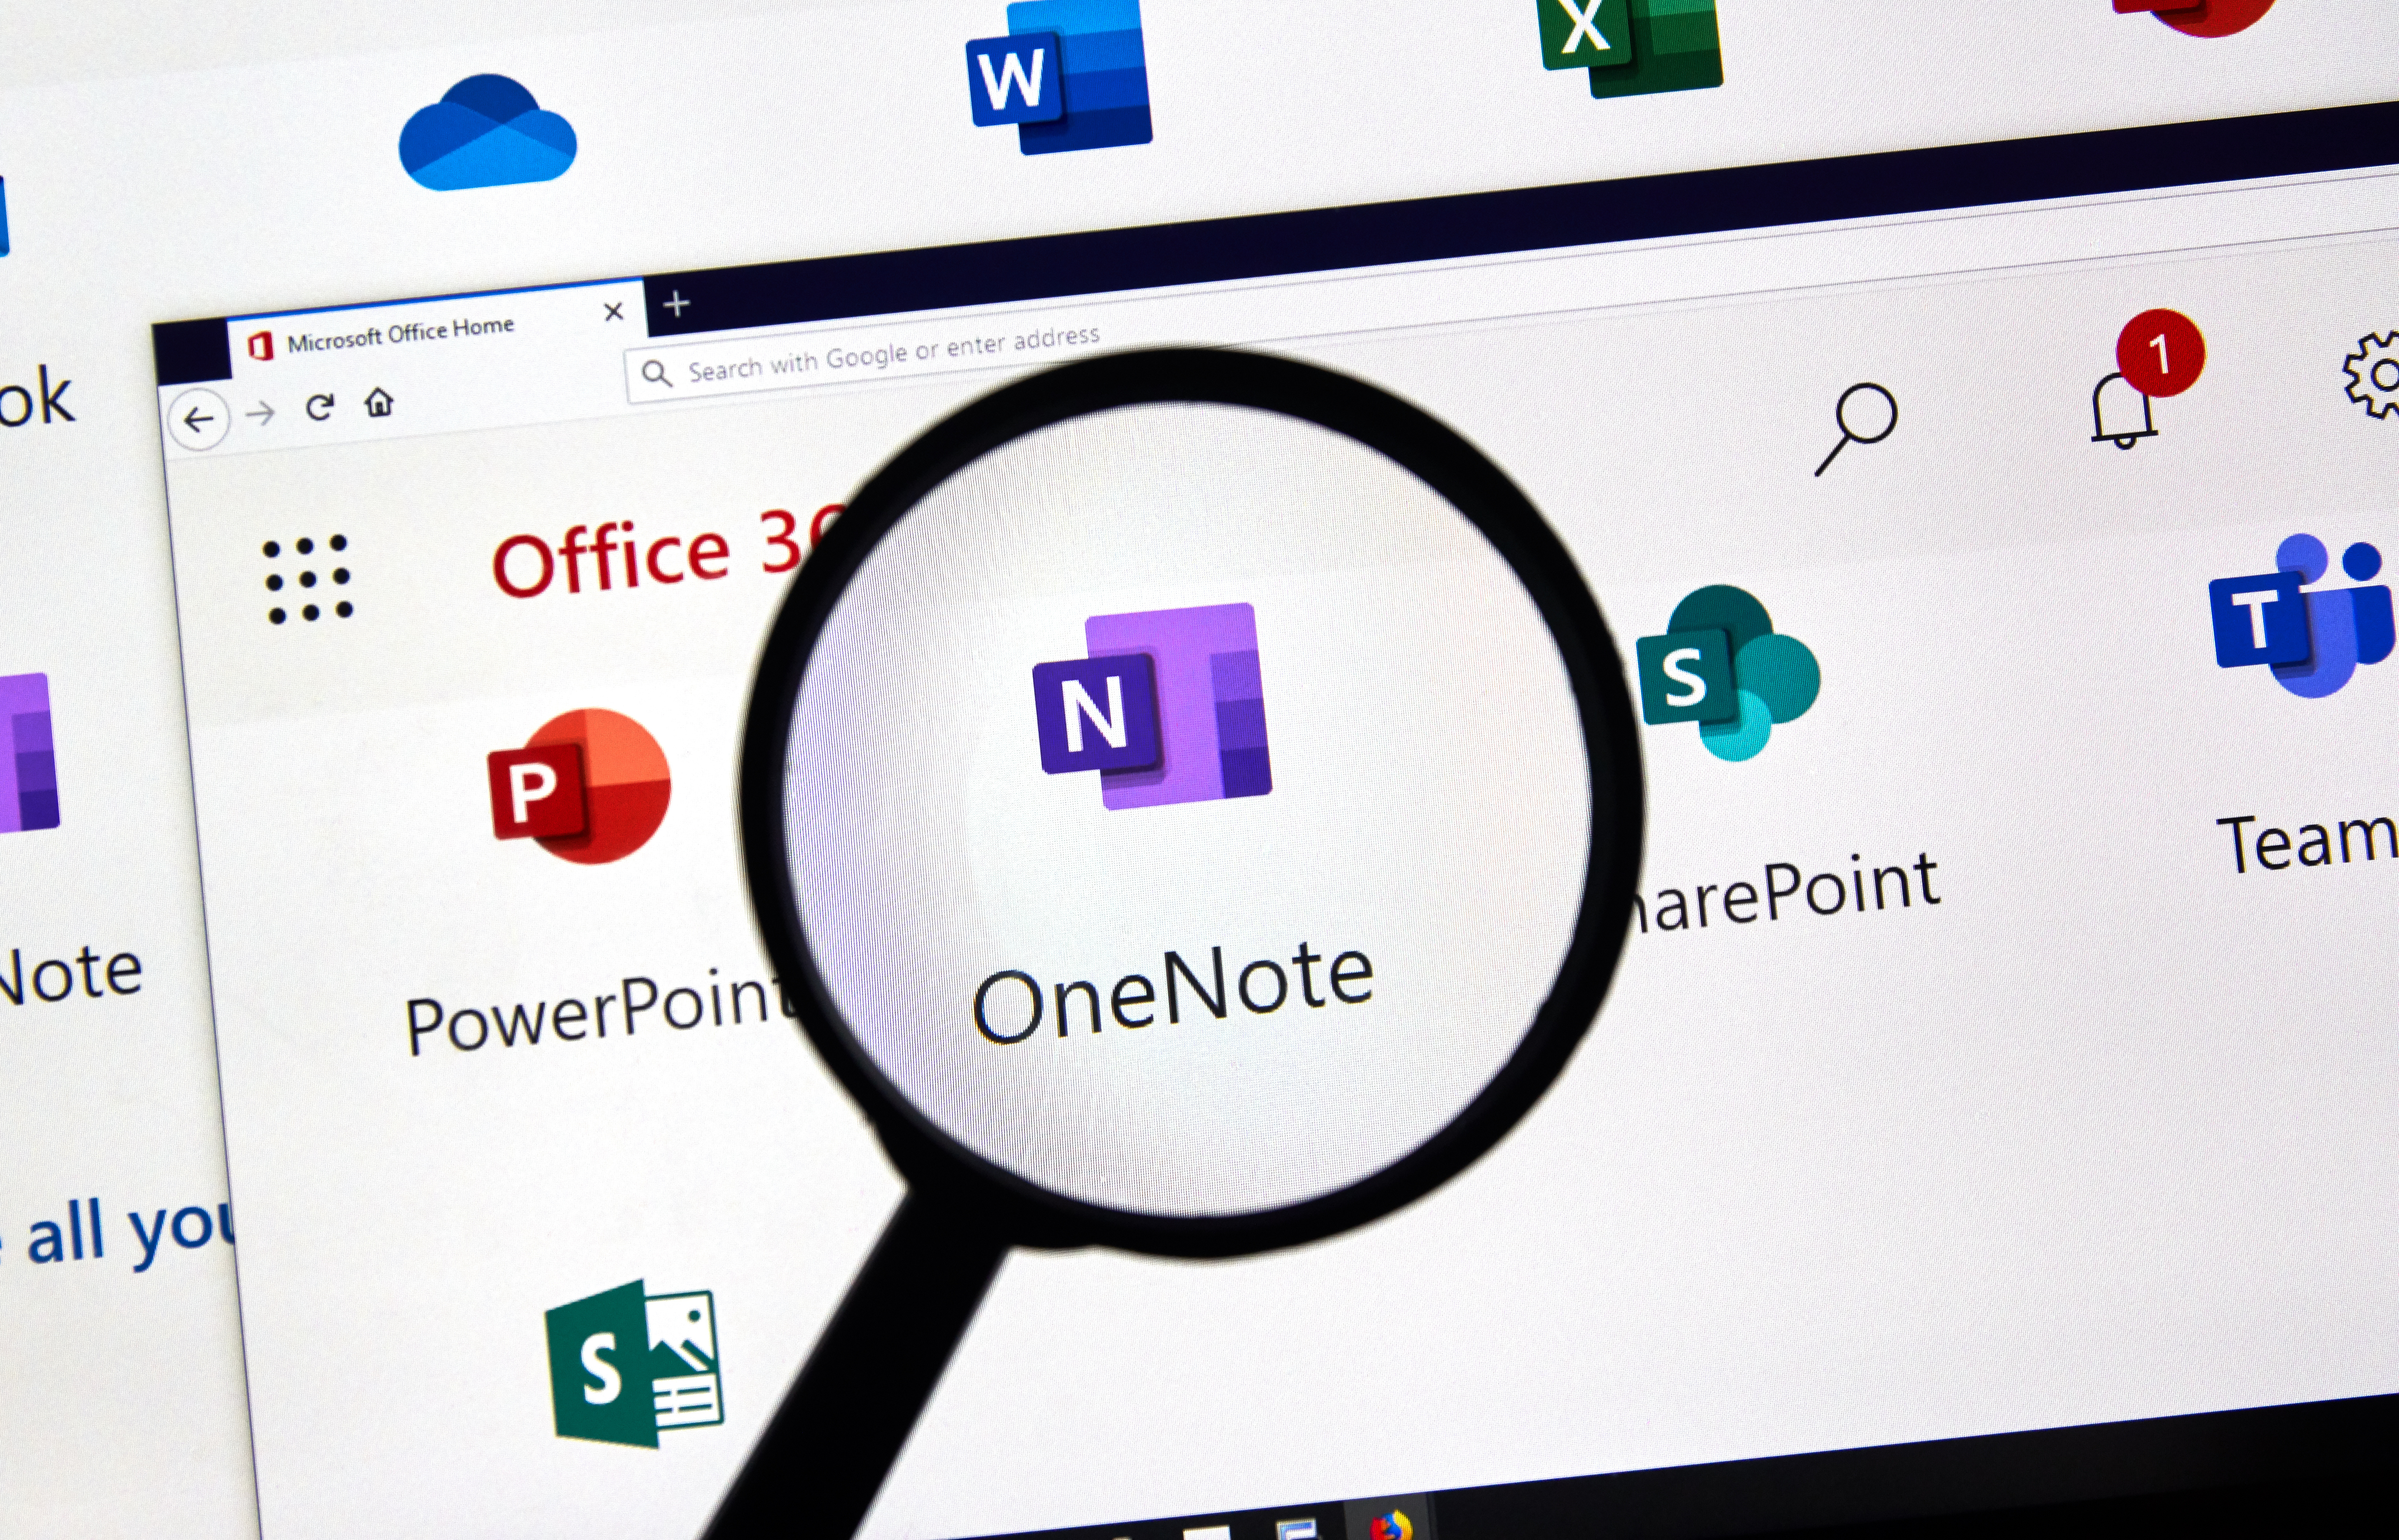 OneNote & OneDrive | Manage Your Data & Optimize Your Syncing